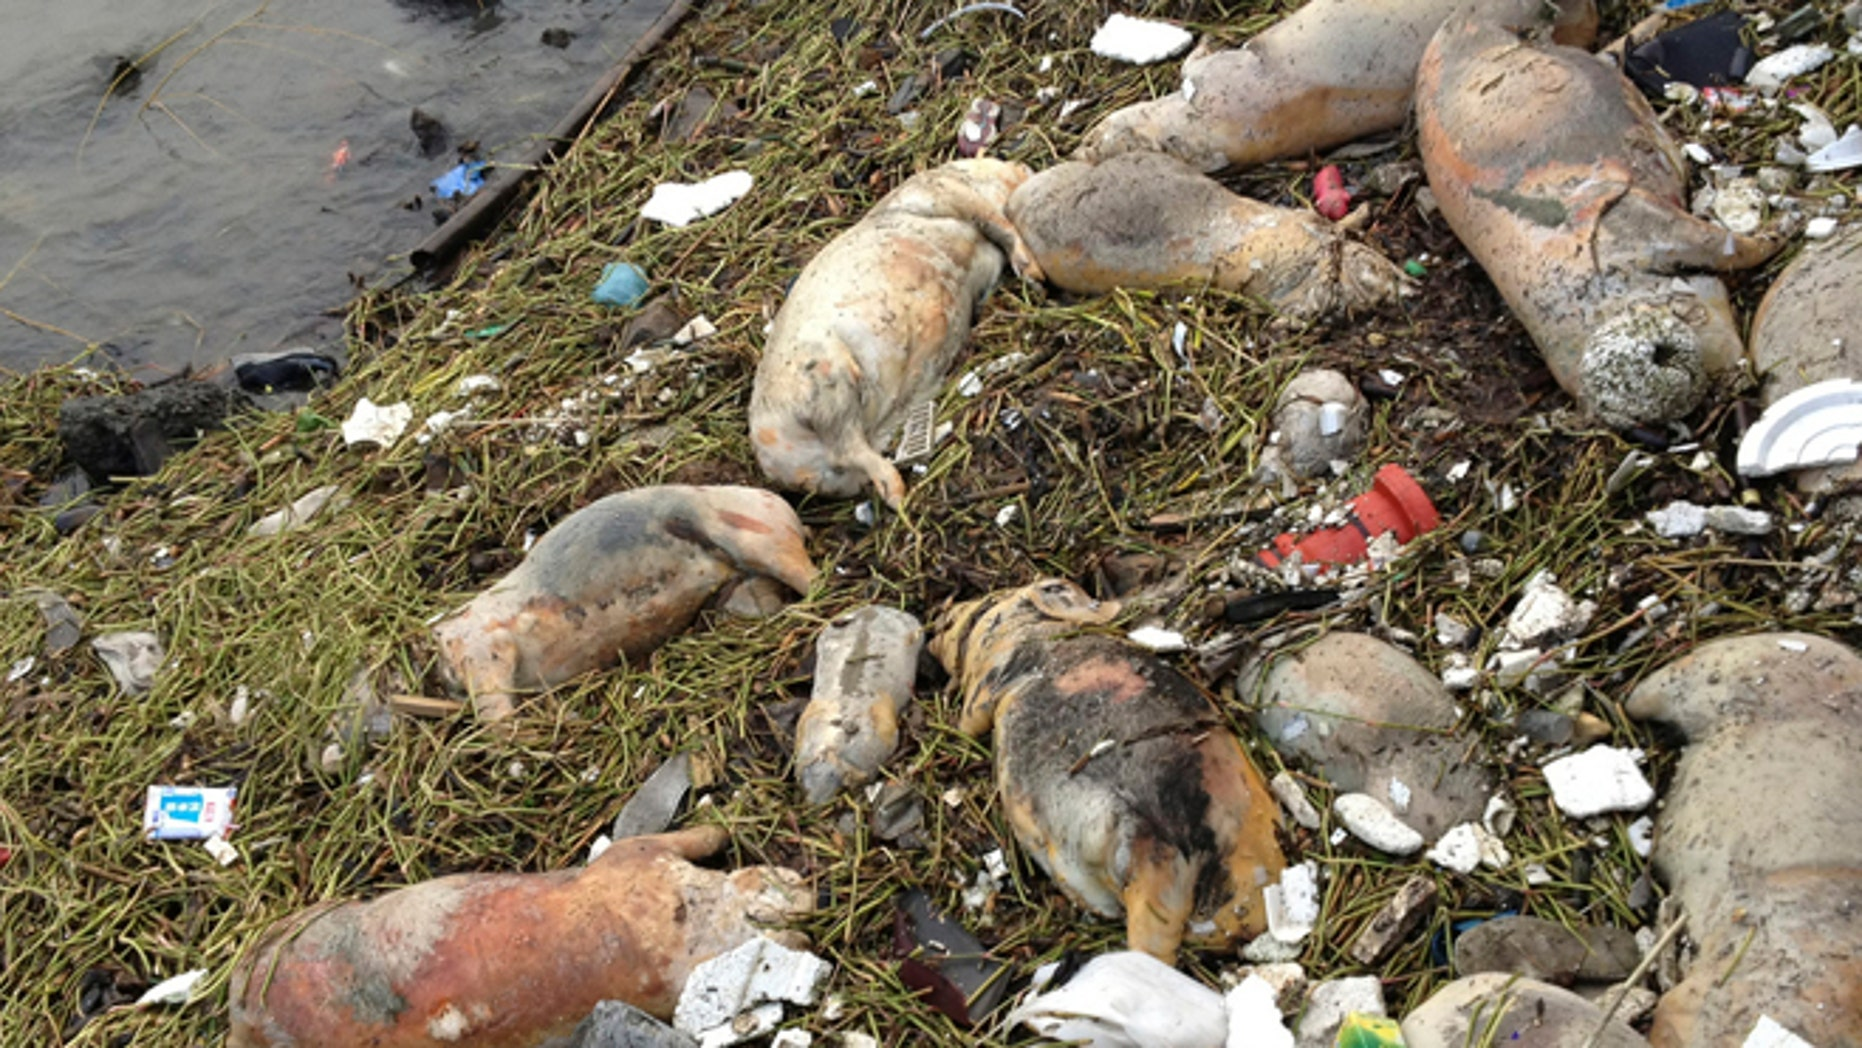 Sunday, March 10, 2013: In this photo taken Thursday and made available Sunday, dead pigs are strewn along the riverbanks of Songjiang district in Shanghai, China. Chinese officials say they have fished out 900 dead pigs from a Shanghai river that is a water source for city residents. Officials are investigating where the pigs came from. A statement posted Saturday on the city's Agriculture Committee's website says they haven't found any evidence that the pigs were dumped into the river or of any animal epidemic.